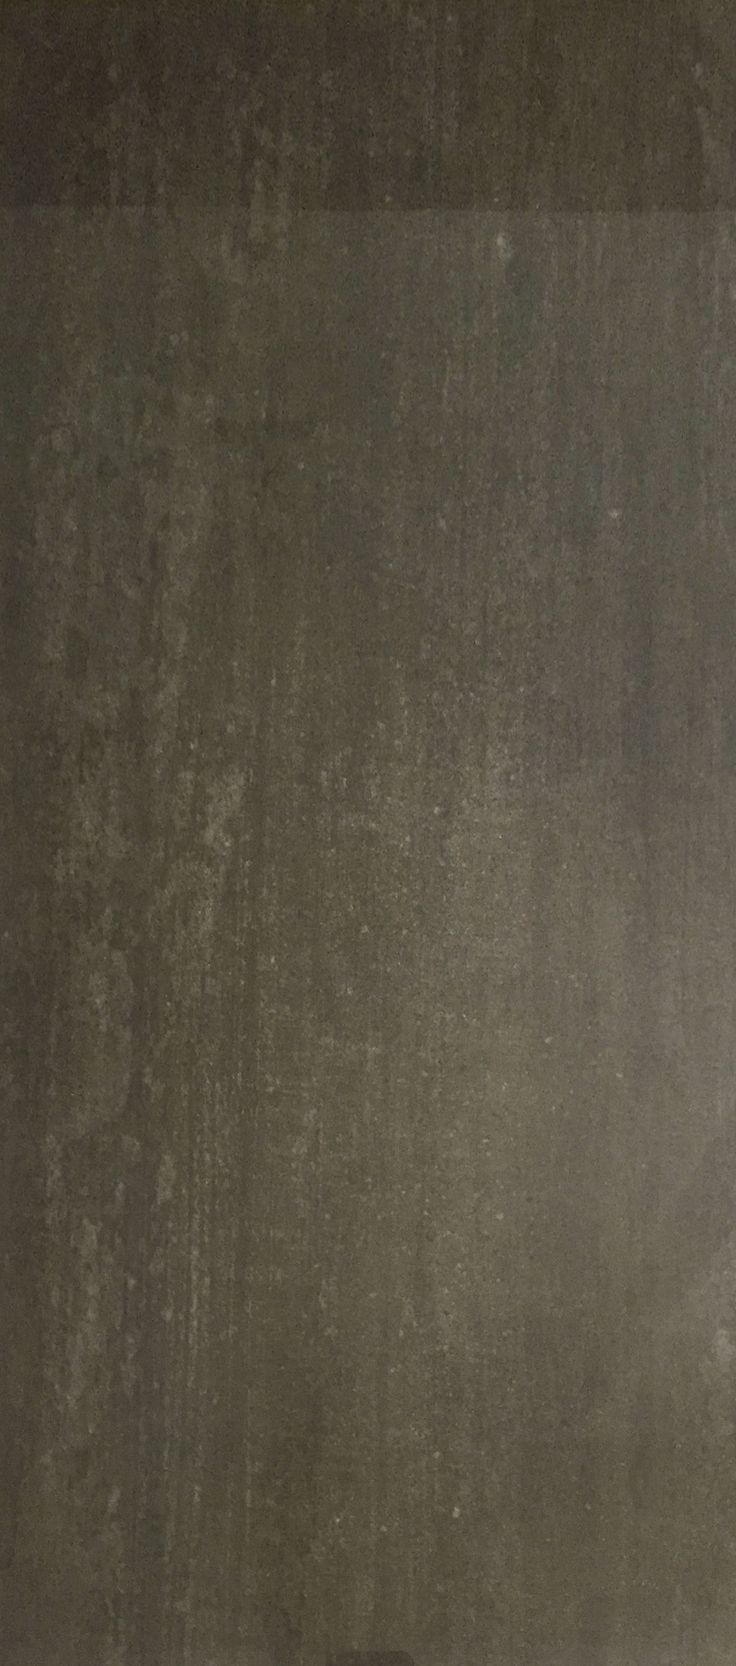 Personal Selection Bathroom Floor or Wall Tile - Mark Graphite Lap